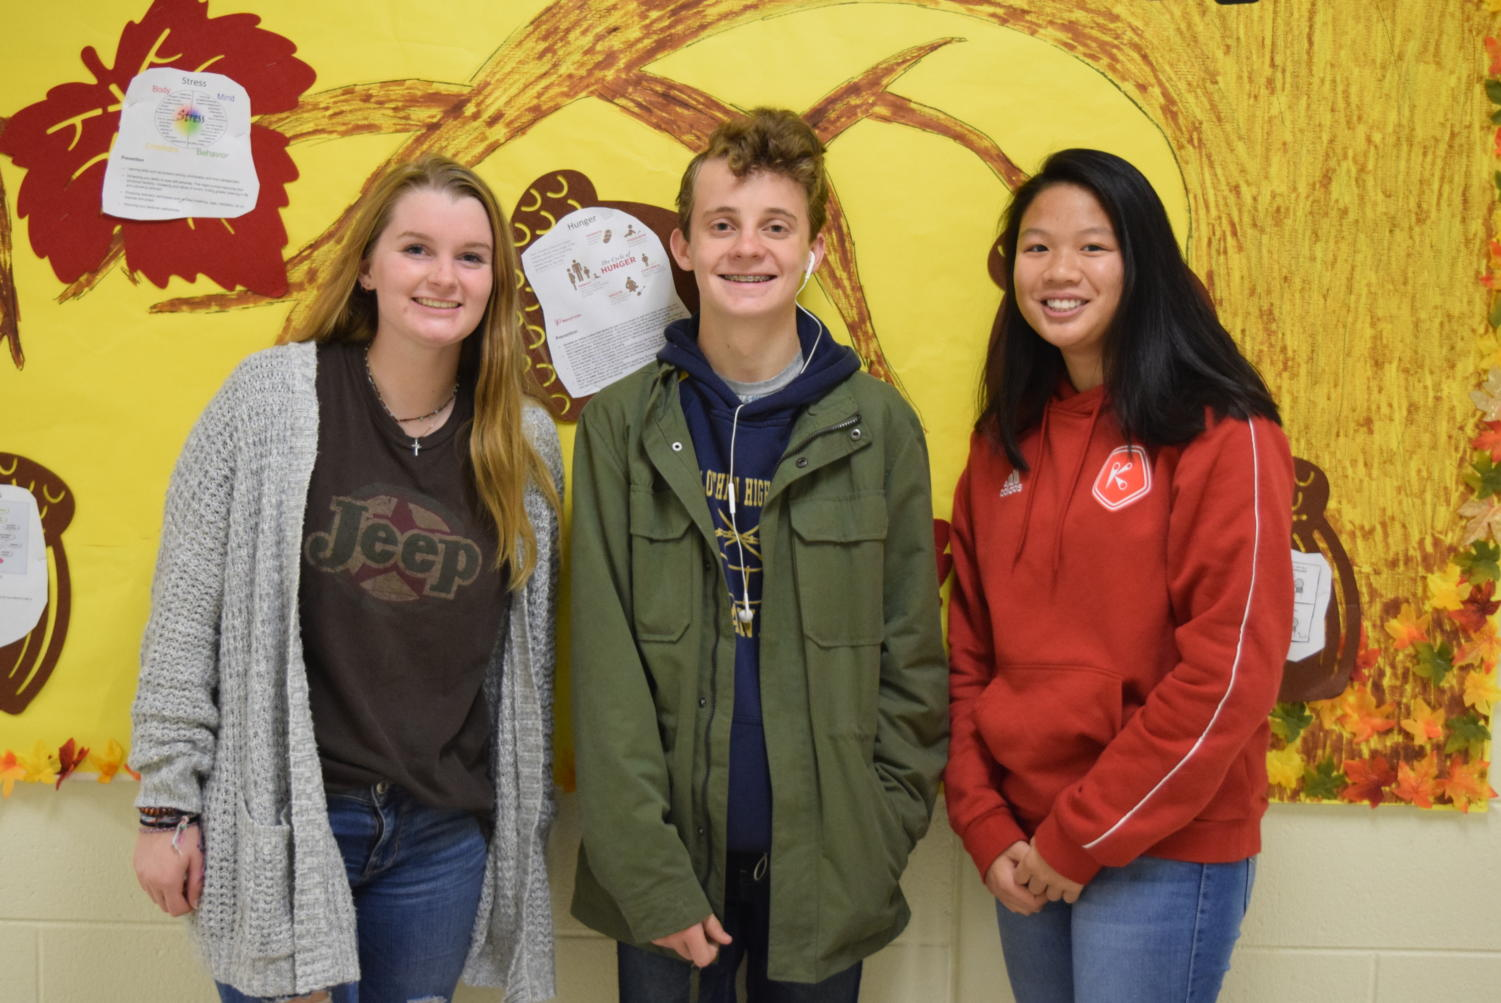 Cara Hahn, Noah Burch, and Emily Truong count down the days for their Thanksgiving traditions to start.